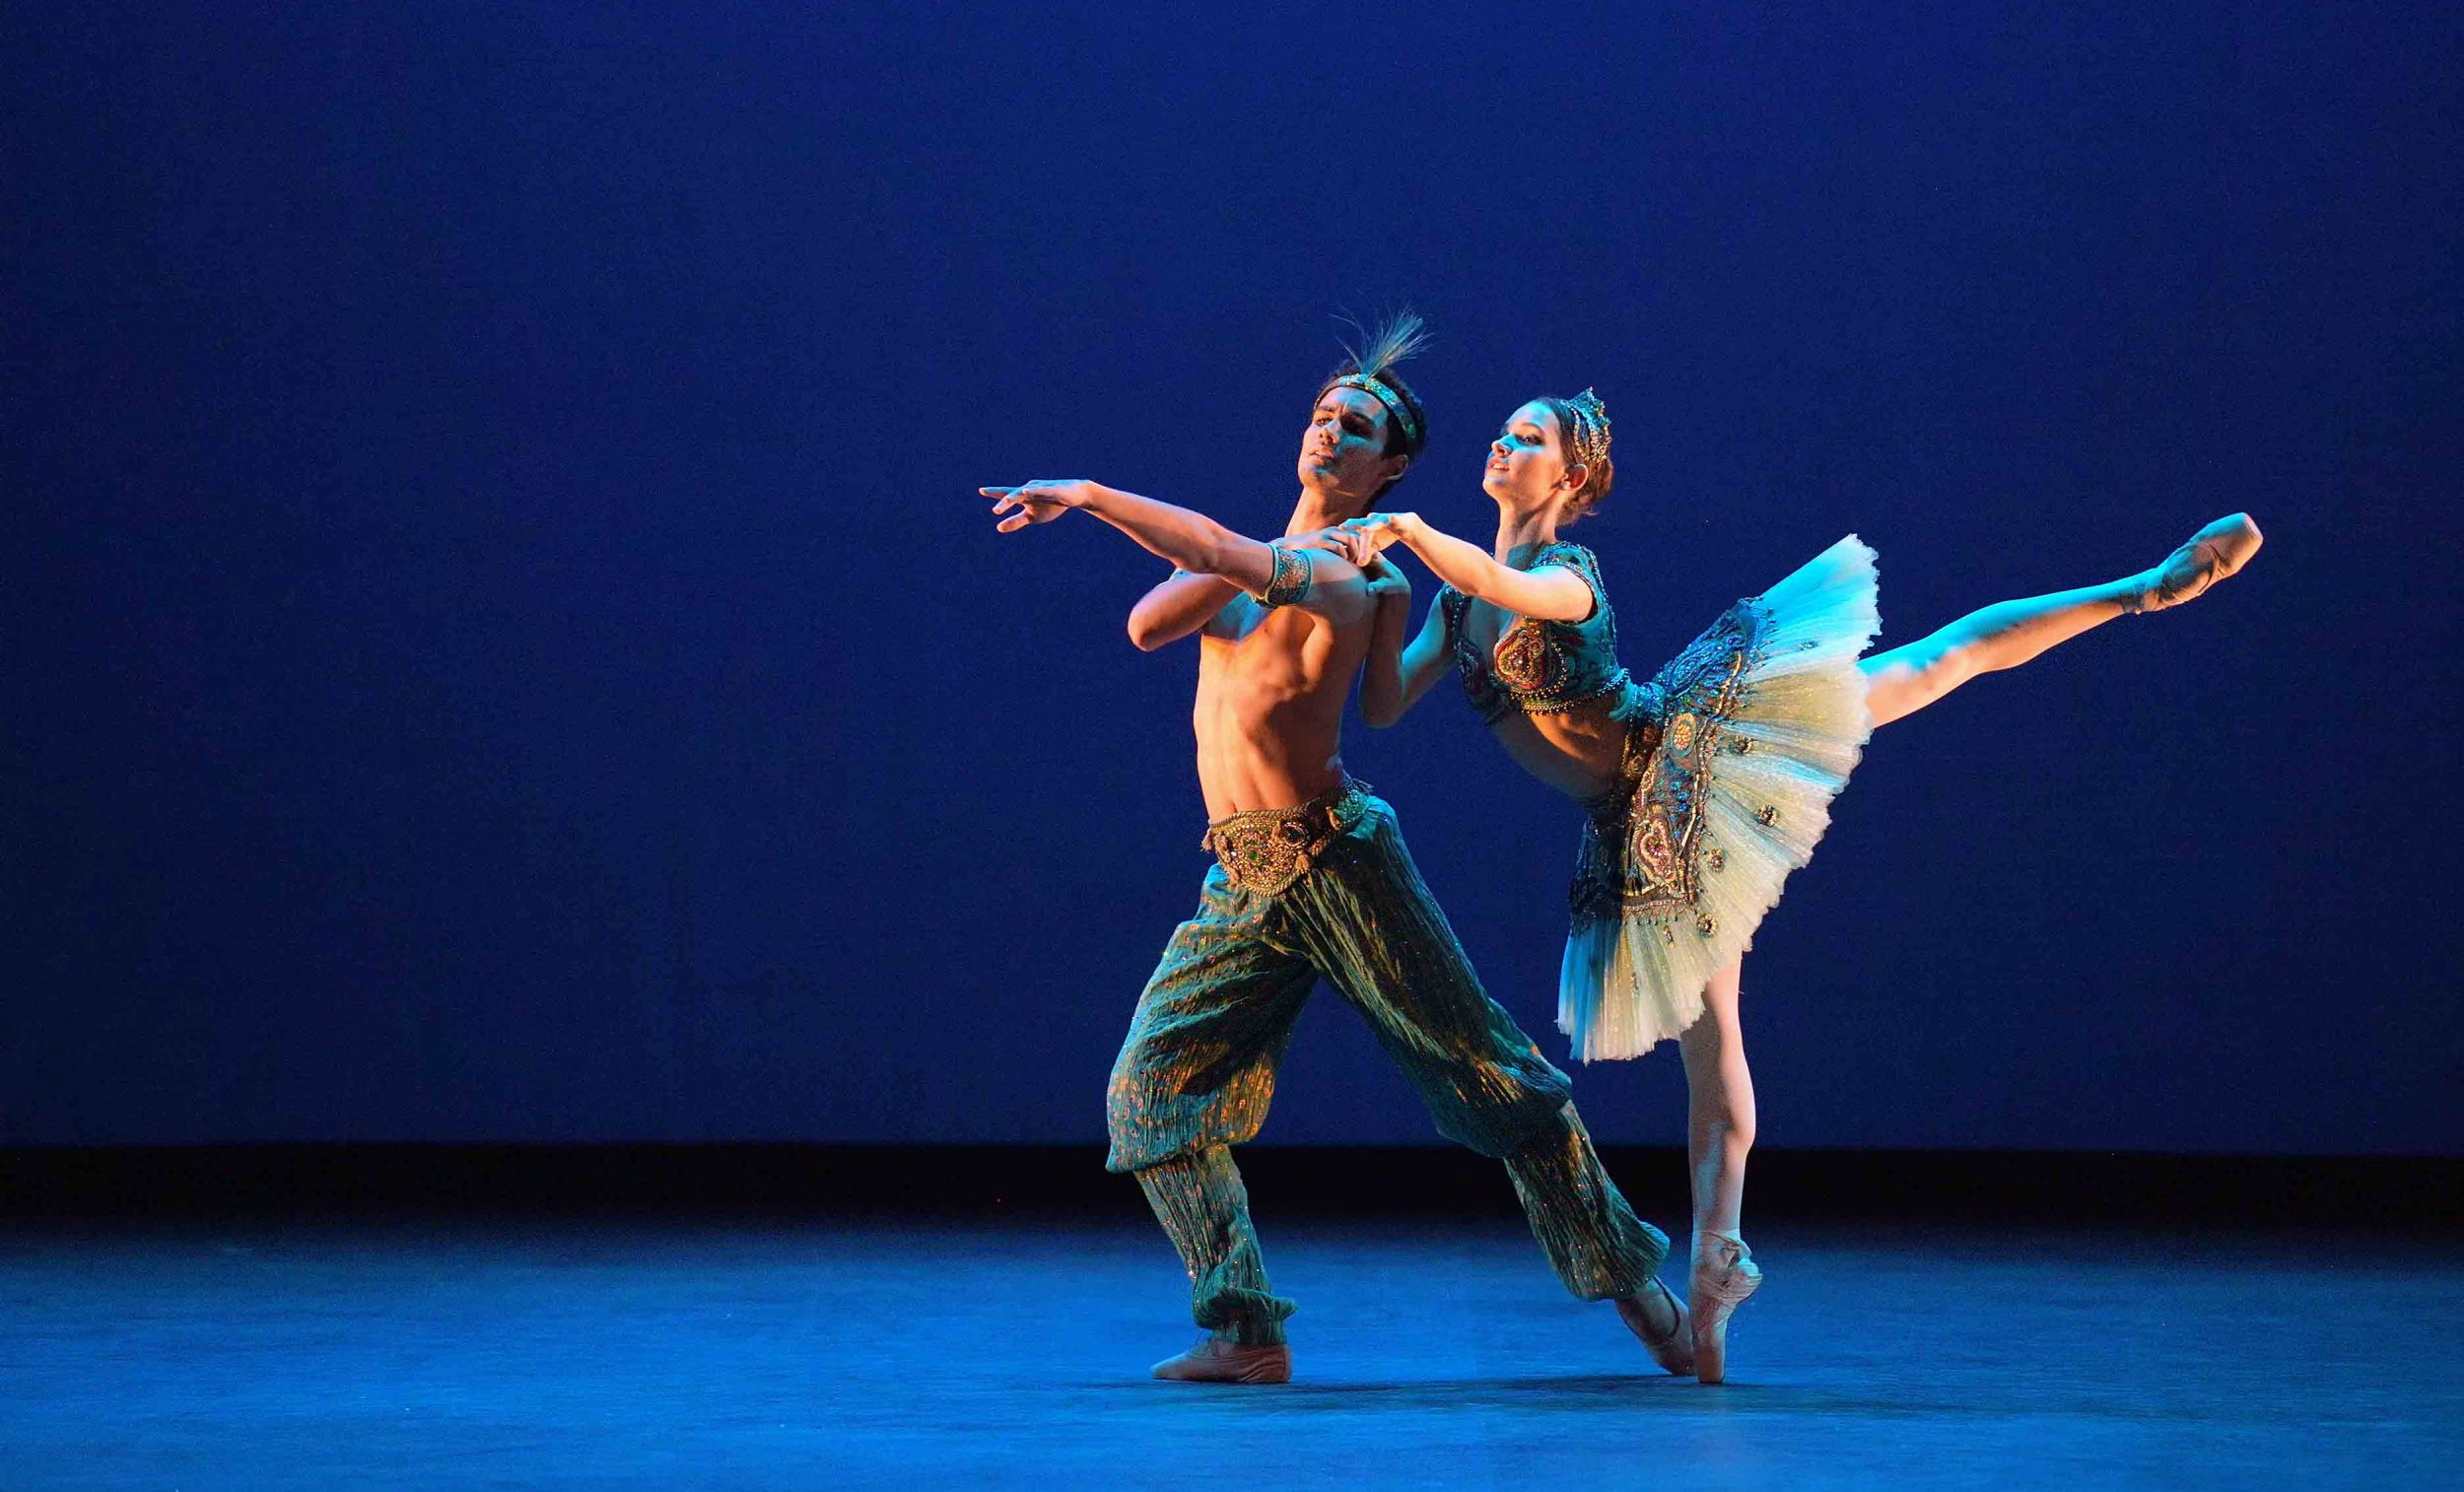 Francesca-Velicu-and-Daniel-McCormick-performing-Le-Corsaire-©-Laurent-Liotardo-(1)